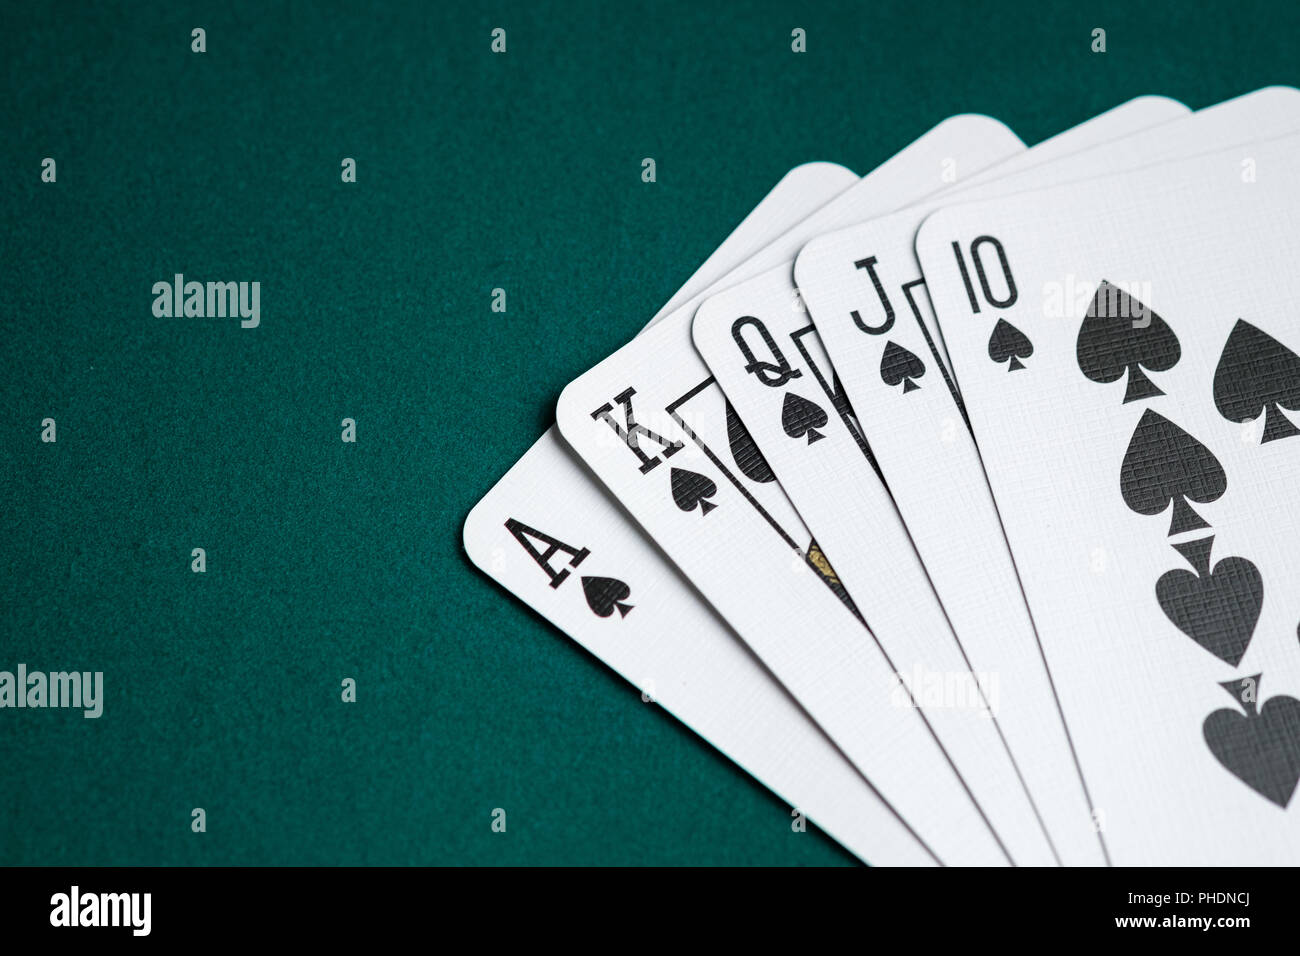 Royal Flush Combination Cards On Green Table For Poker Game Stock